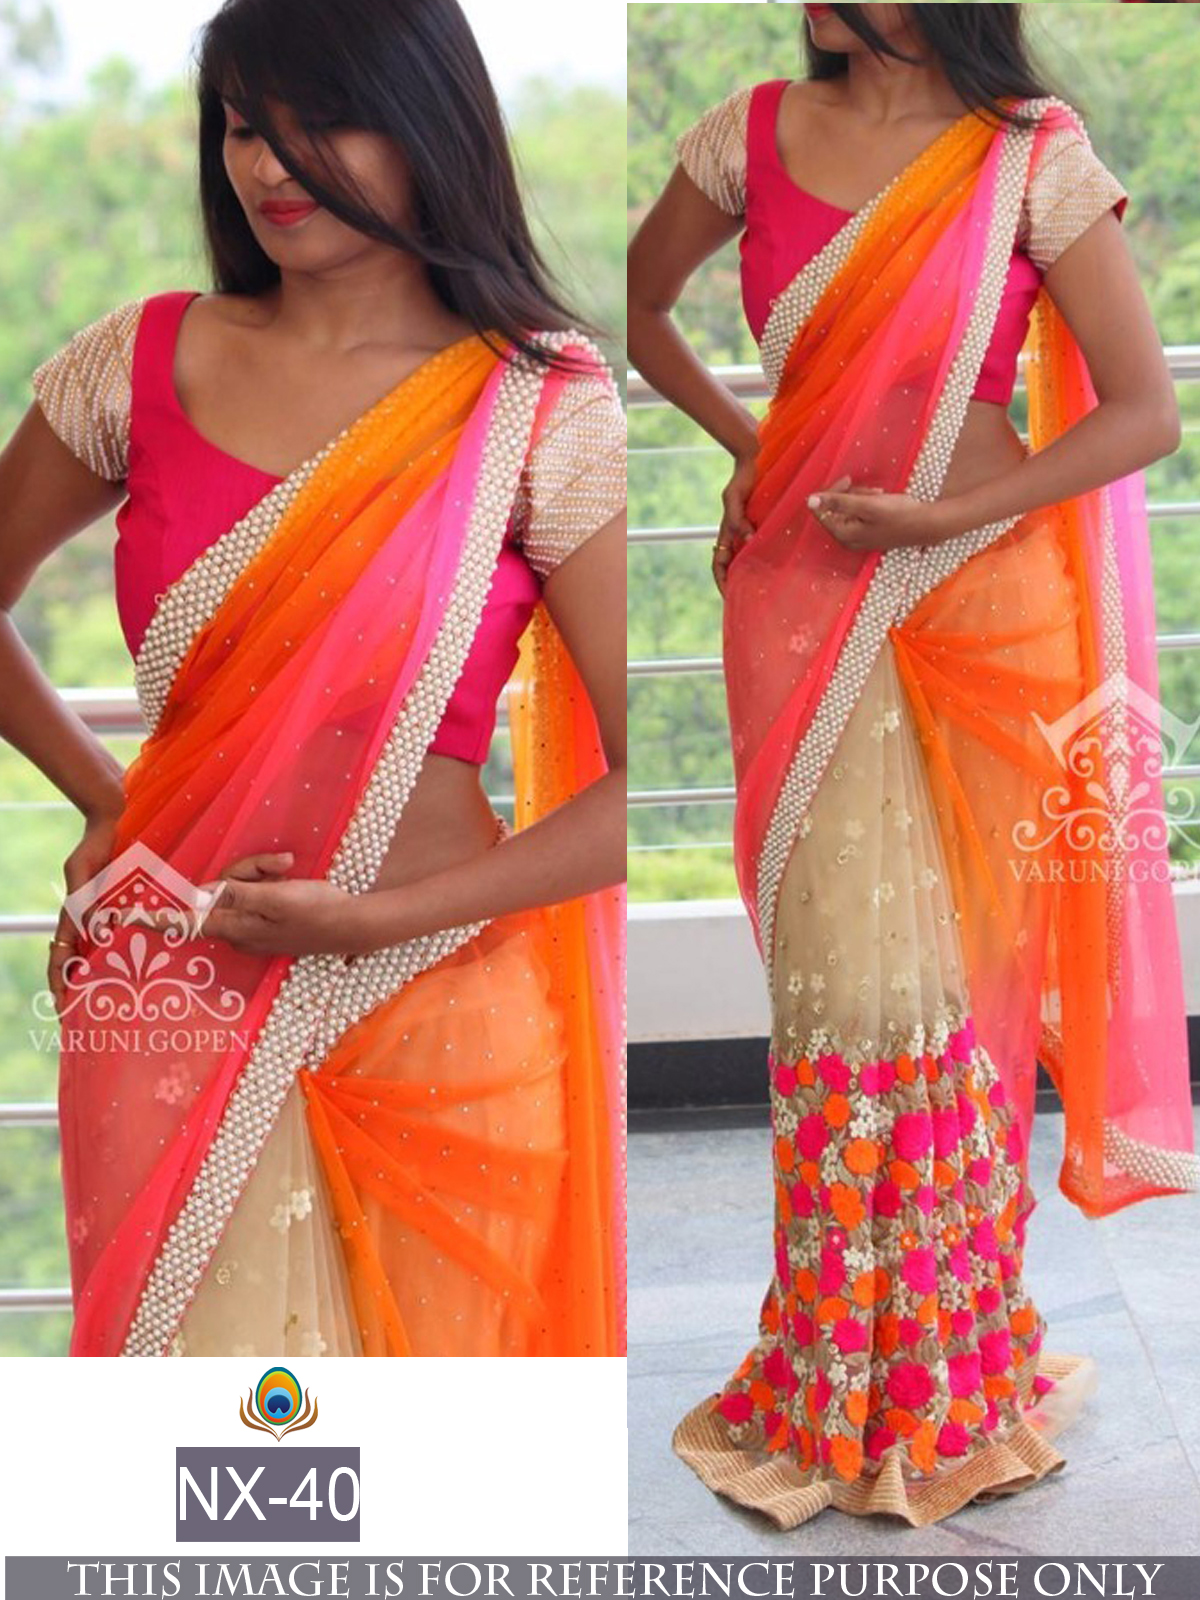 ff8c8004843f2a Multicolor embroidered georgette saree with blouse - Shree Sai Trading -  1628458